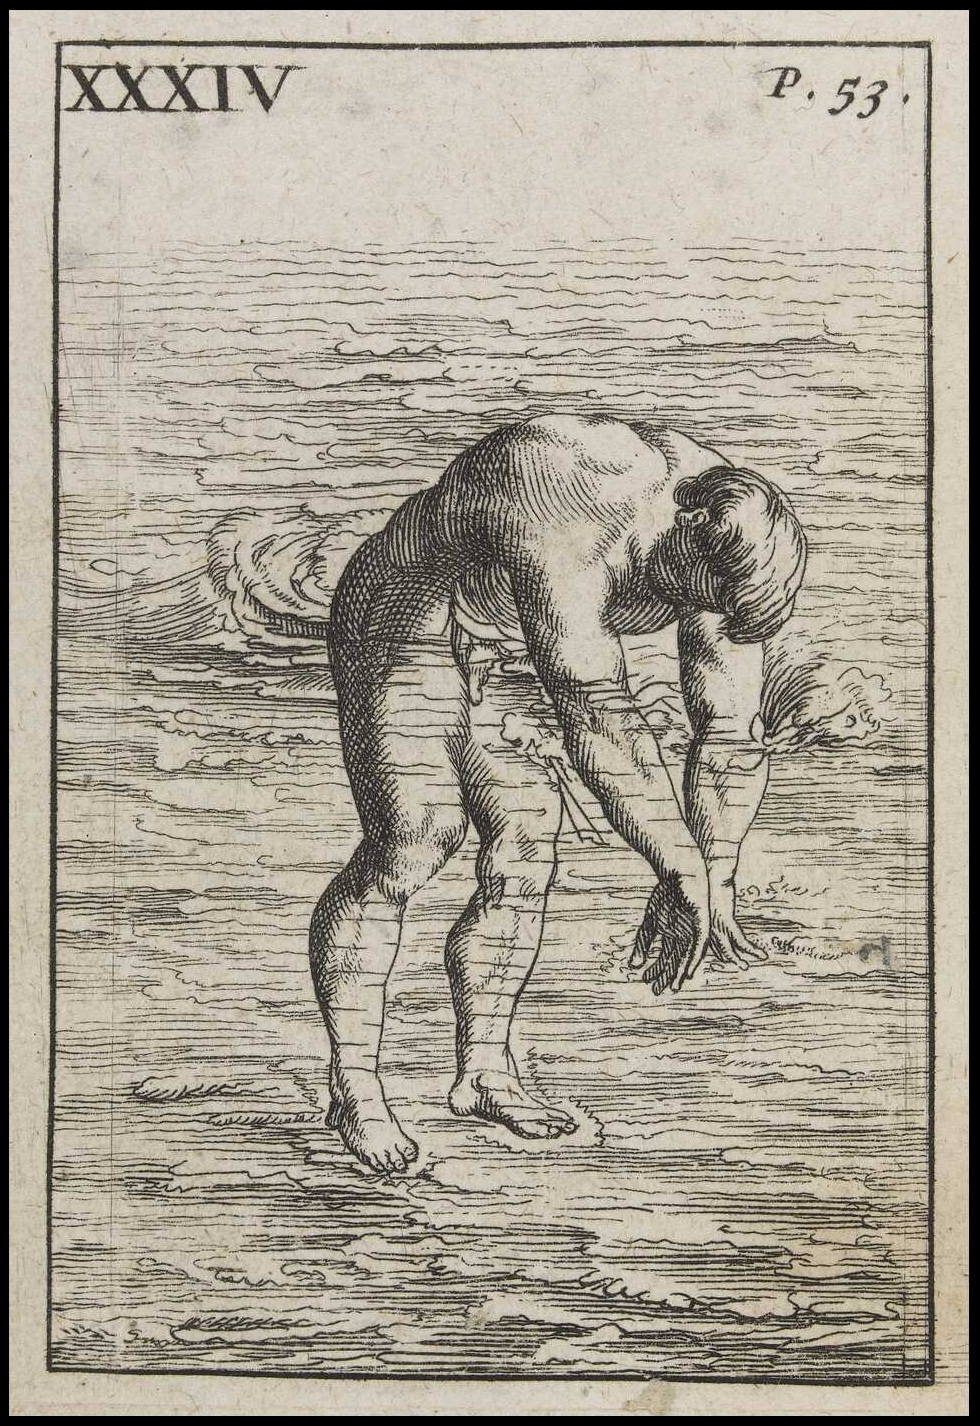 swimming manual picture of man standing in water bent over with submerged hands, about to dive in